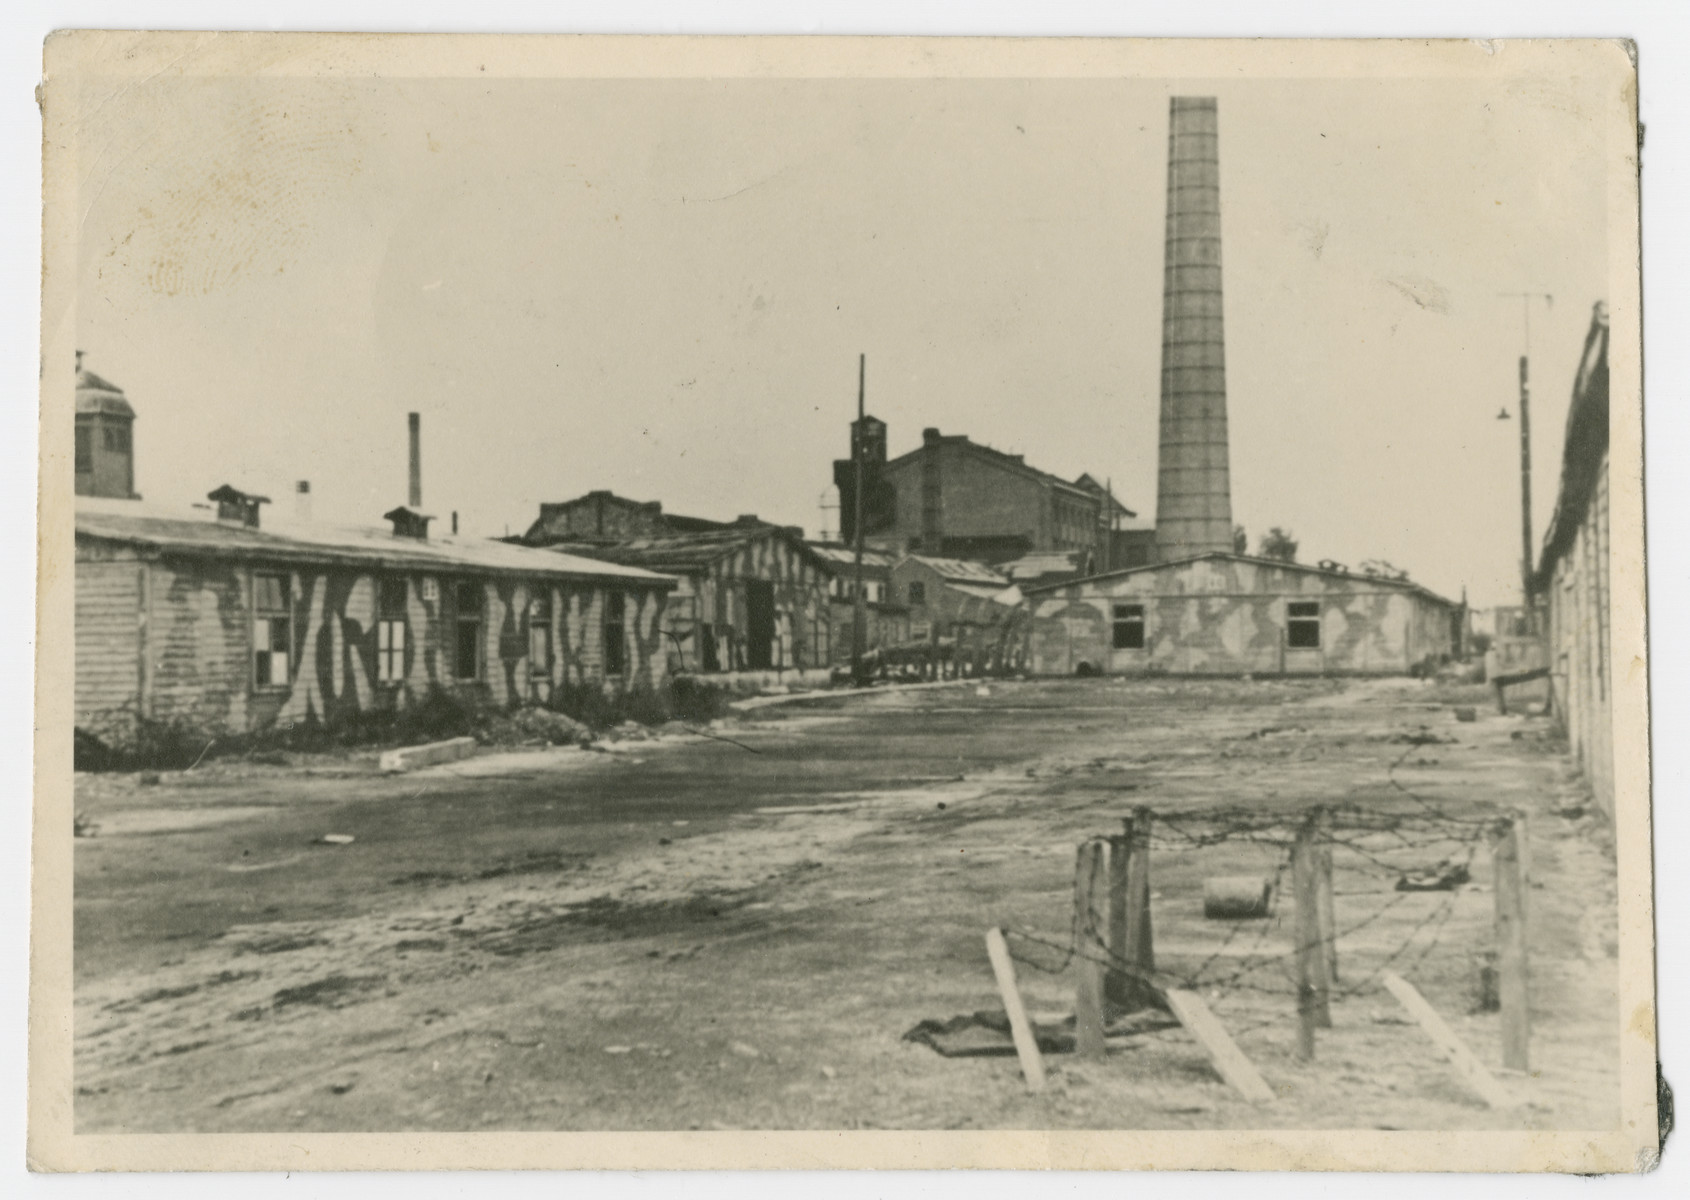 View of the HASAG -- Pelcery labor camp.